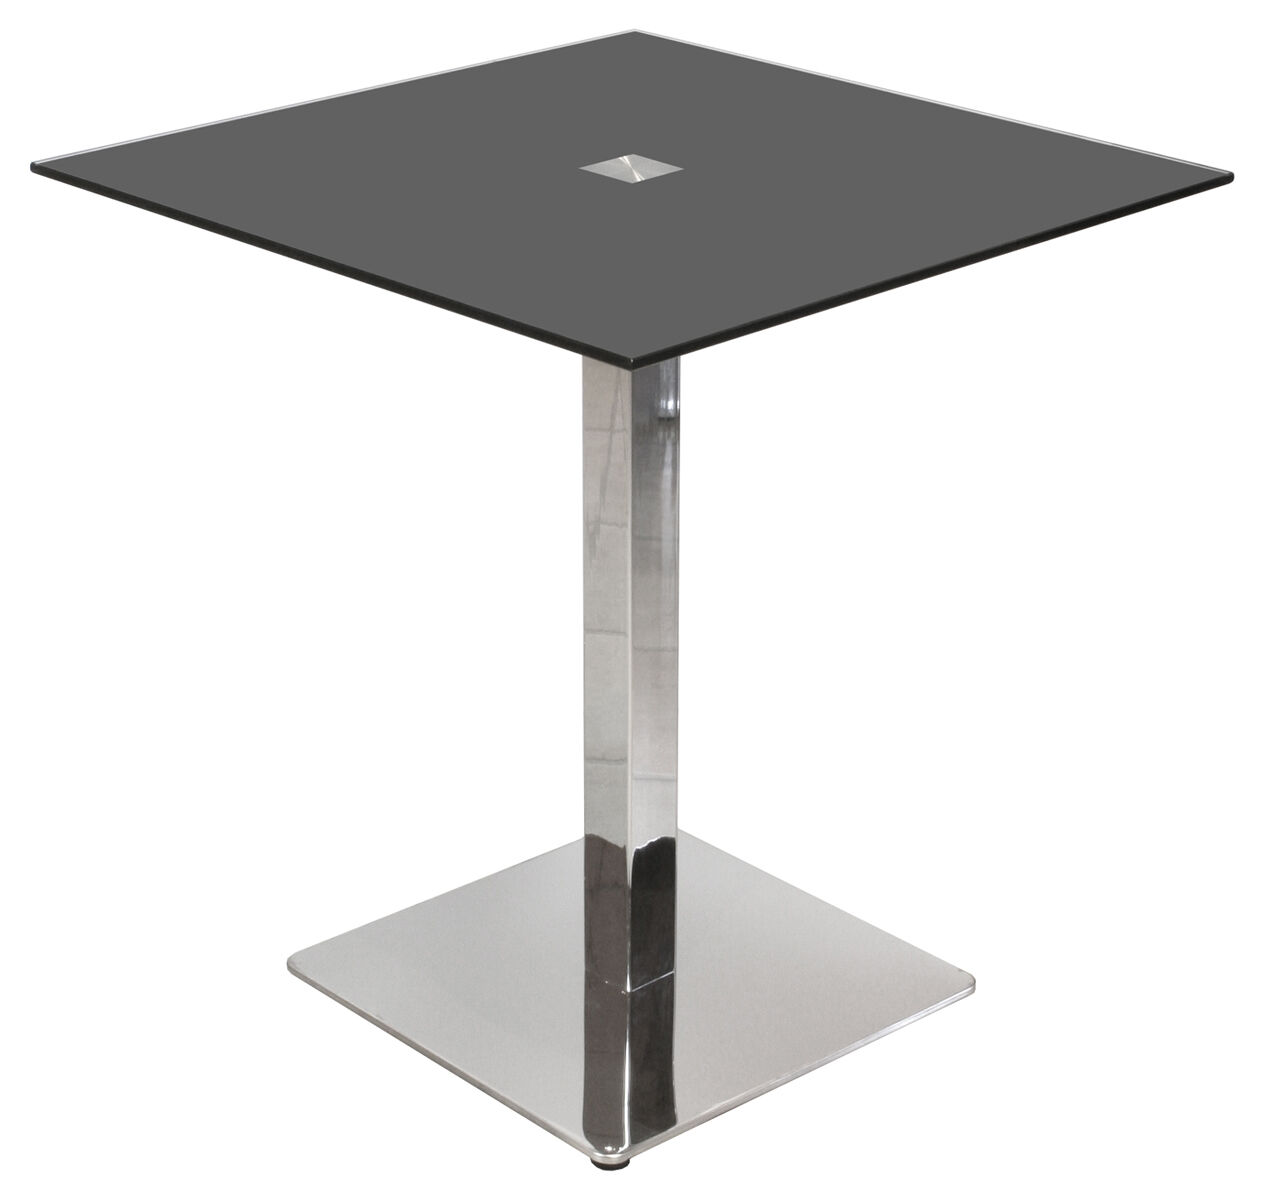 Glass dining table dining furniture ebay for Black glass dining table